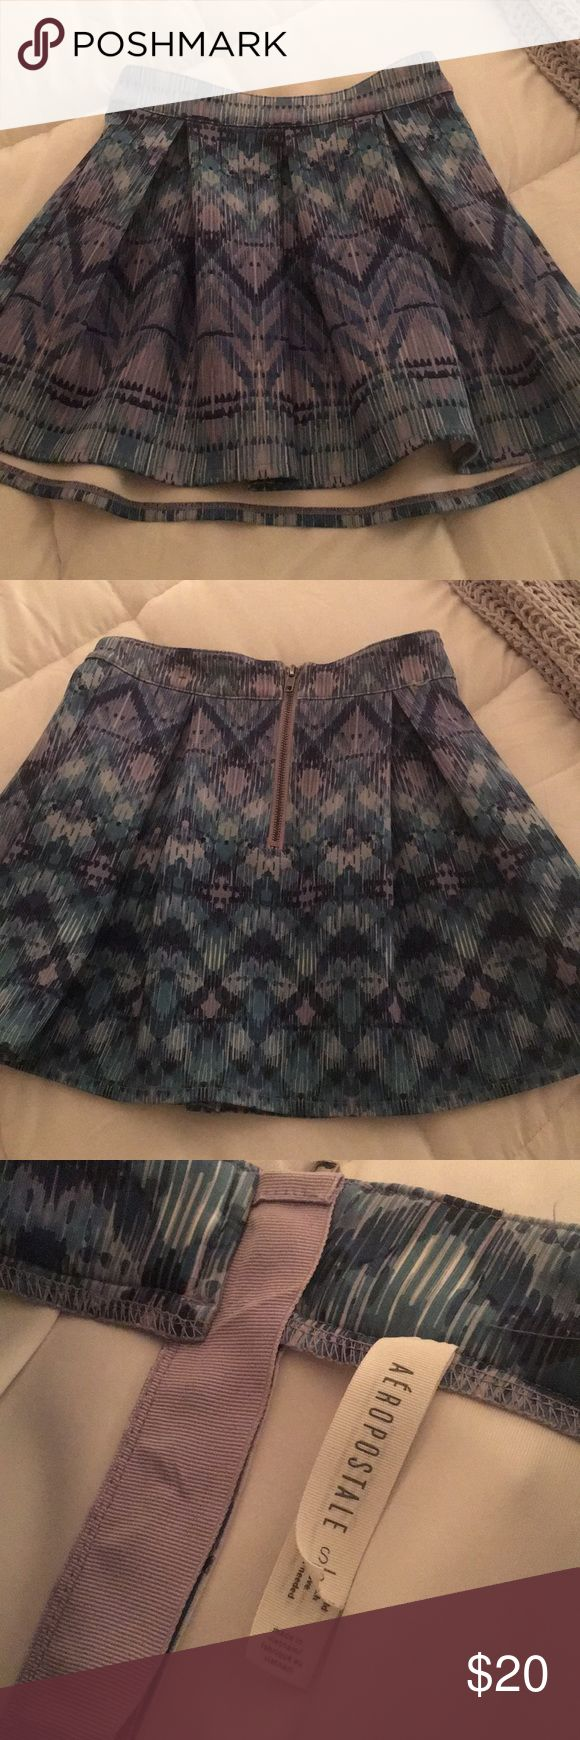 Aeropostale Mini Skirt Perfect condition! Thick material. Super cute design! Comes to middle of thigh.  Approx. 12 inches long. Aeropostale Skirts Mini